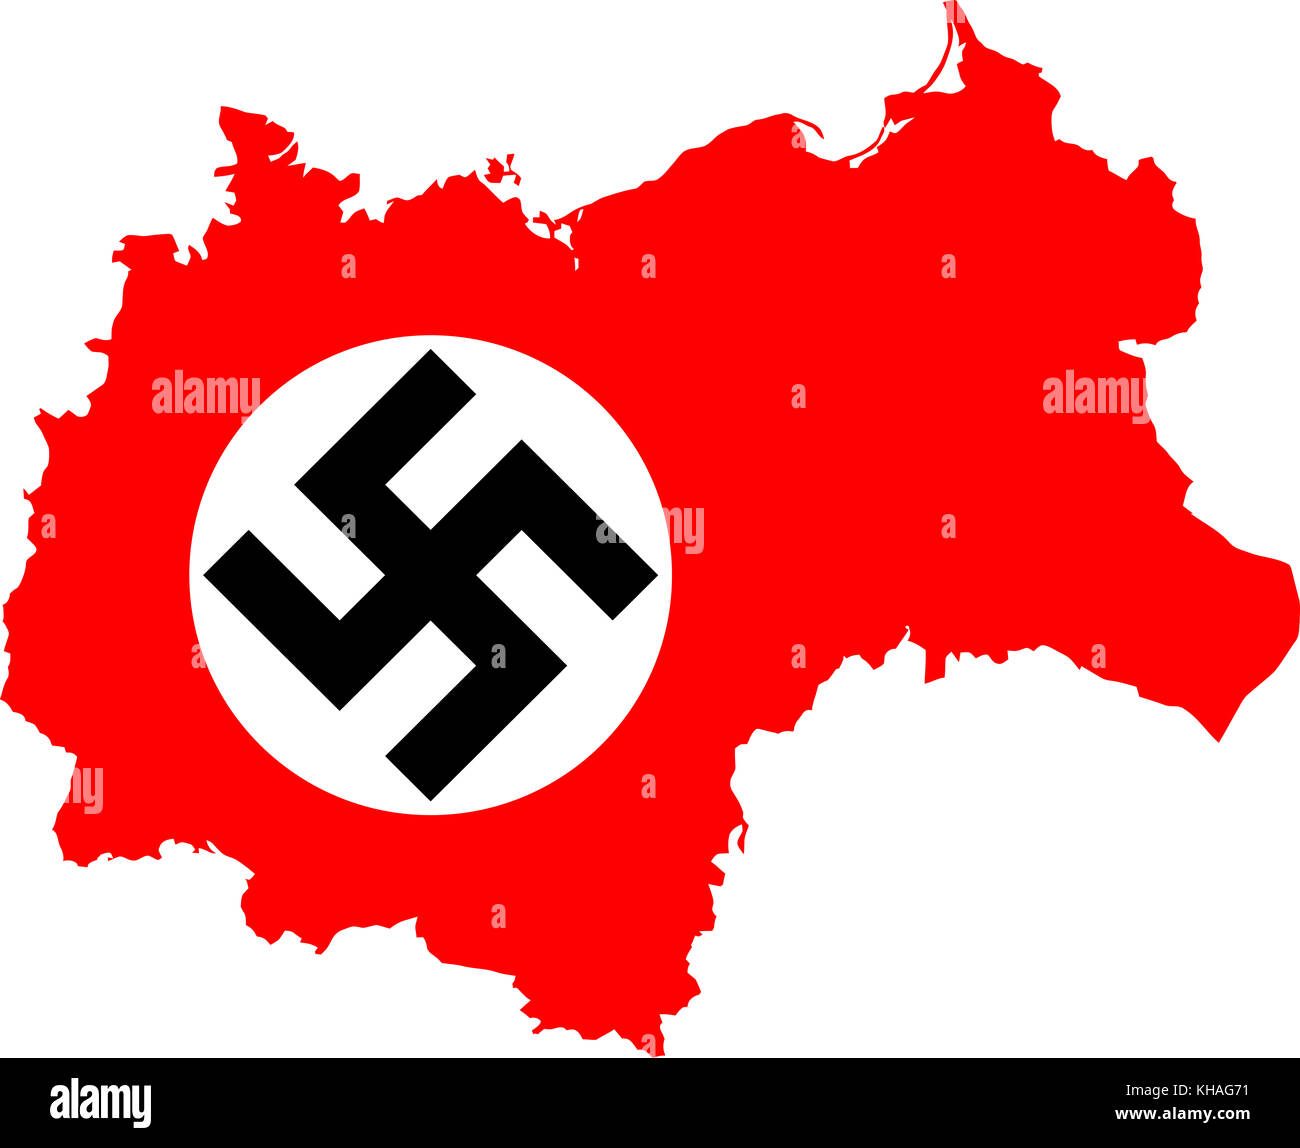 Map Of Nazi Germany With Swastika Third Reich In 1942 Stock Photo